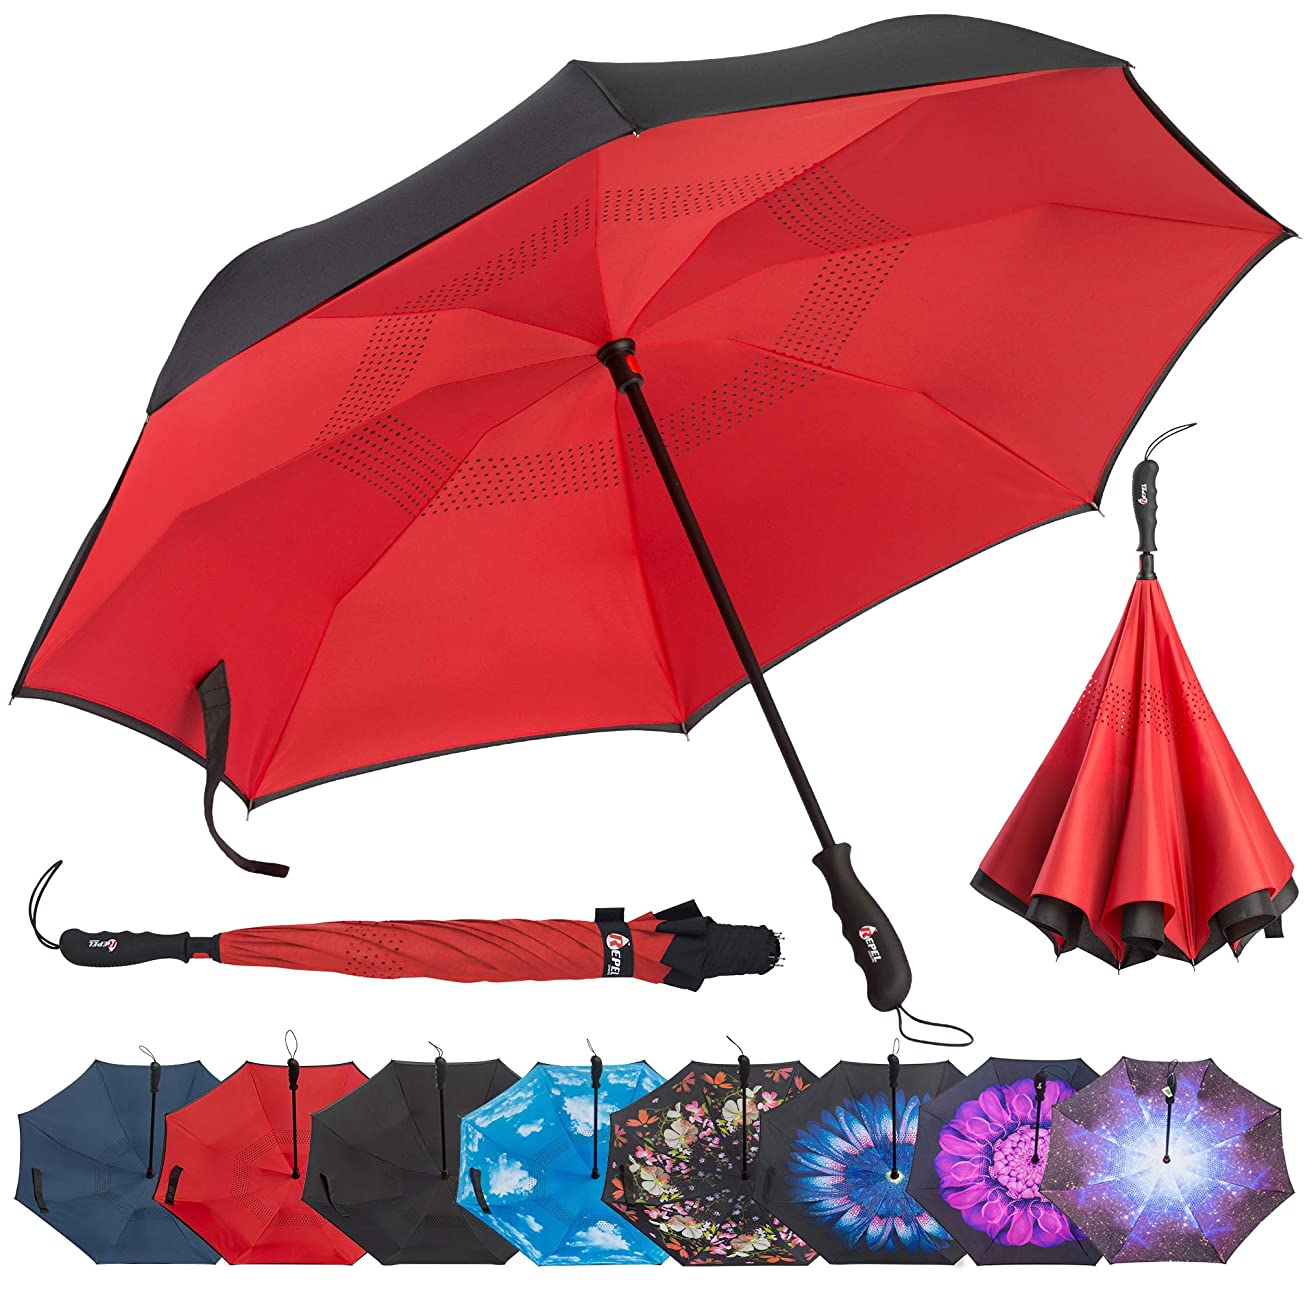 Repel Reverse Folding Inverted Umbrella with 2 Layered Teflon Canopy and Reinforced Fiberglass Ribs (Red)